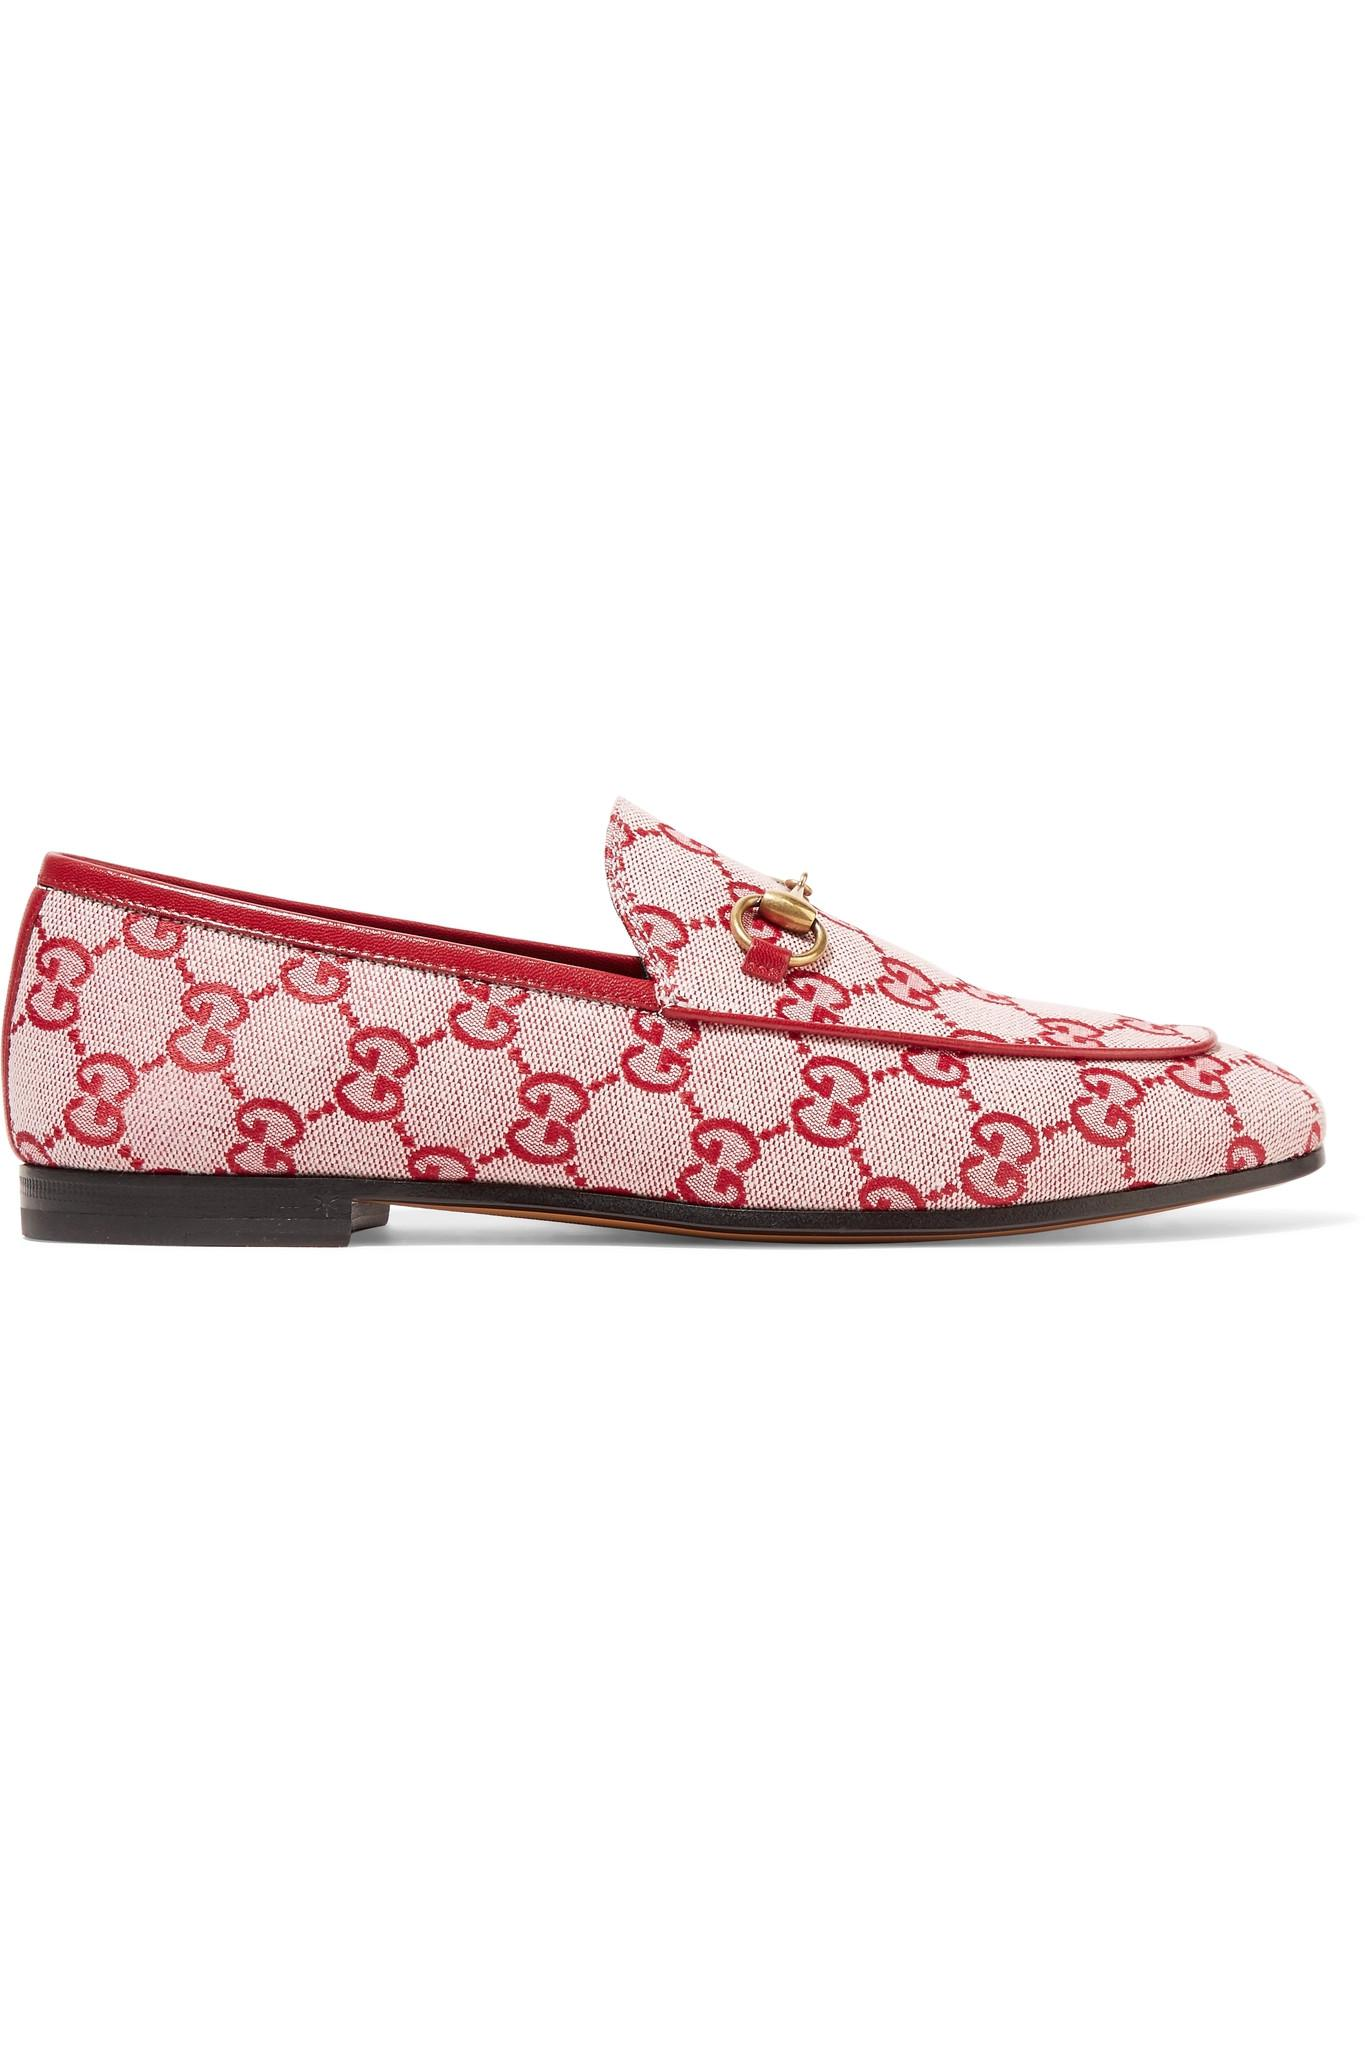 Jordaan Horsebit-detailed Leather-trimmed Logo-printed Canvas Loafers - Red Gucci 4bpo0